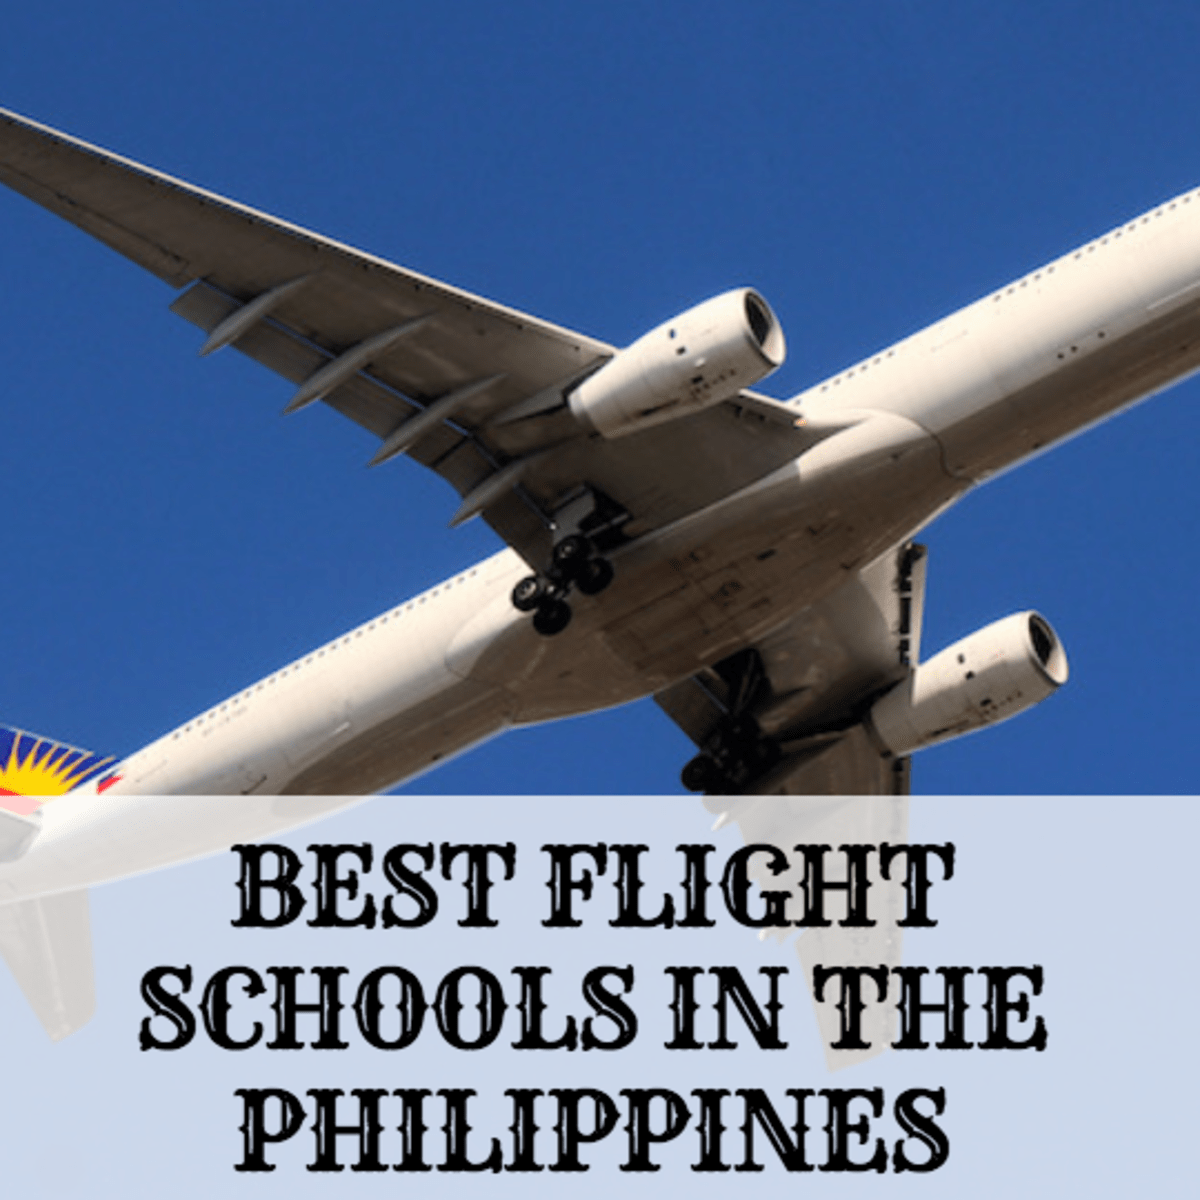 12 Best Flight Schools In The Philippines For Pilot And Maintenance Training Owlcation Education